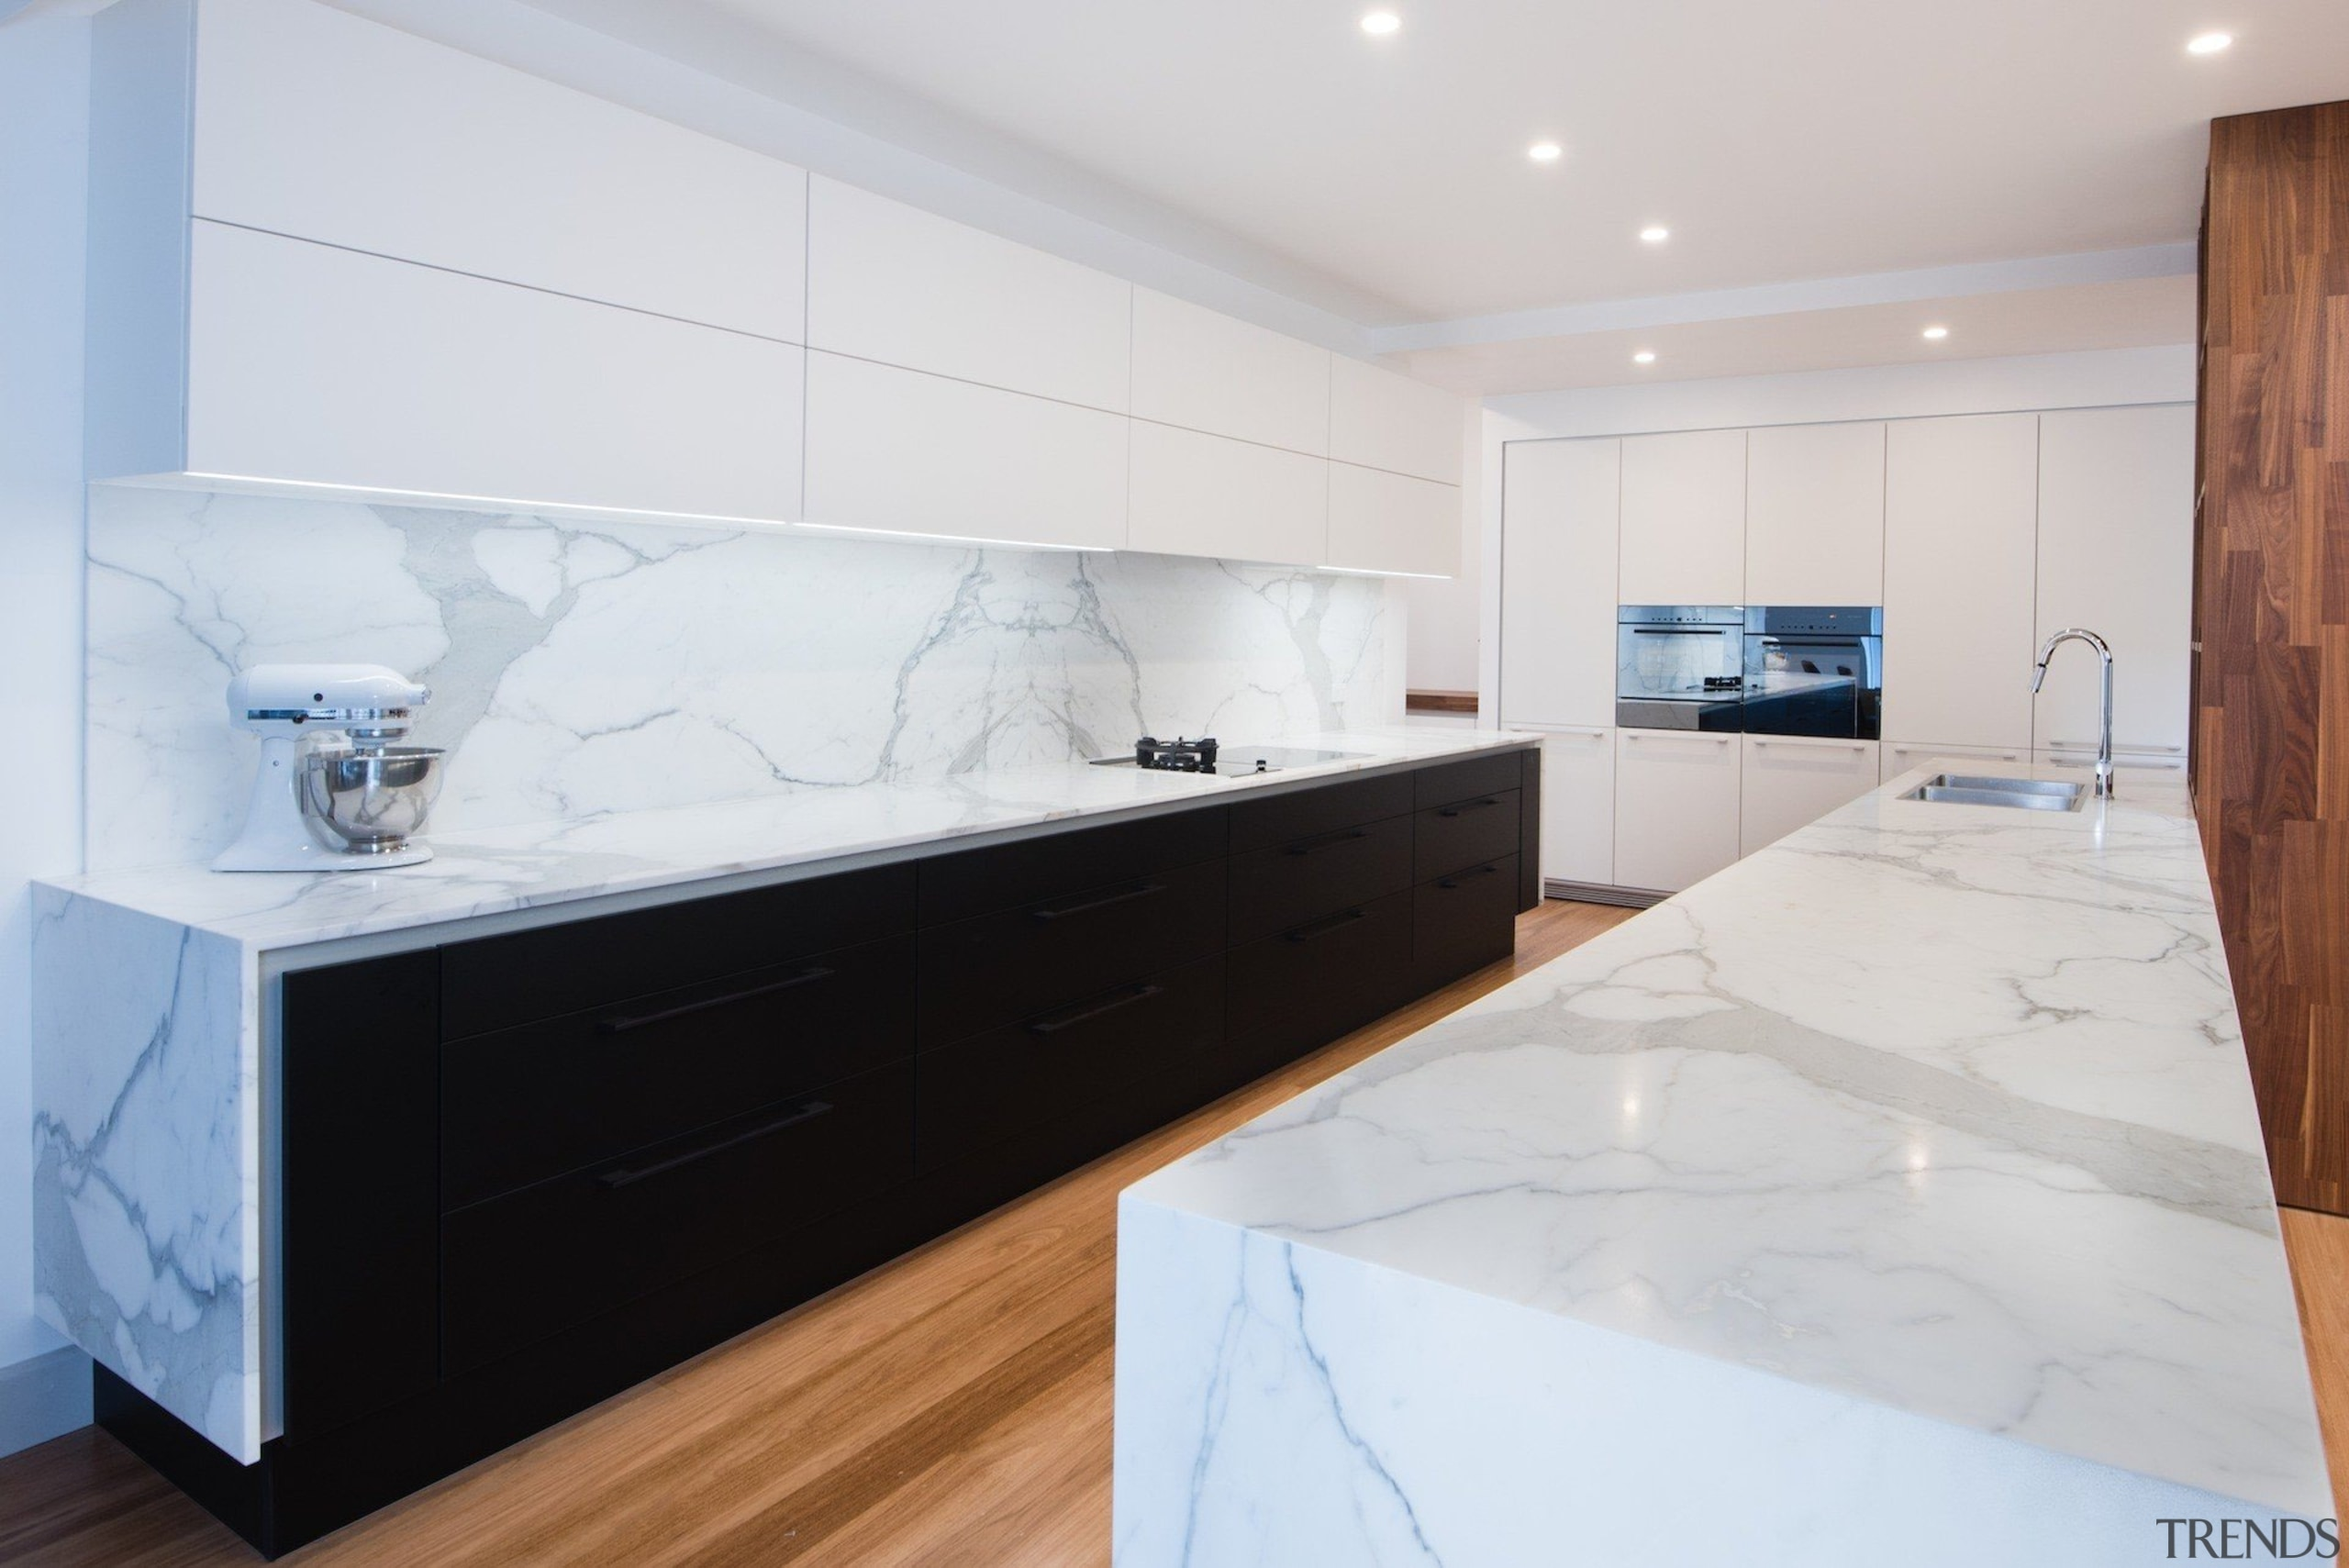 Highly Commended – Pepper Design 1 - countertop countertop, floor, interior design, kitchen, property, room, white, gray